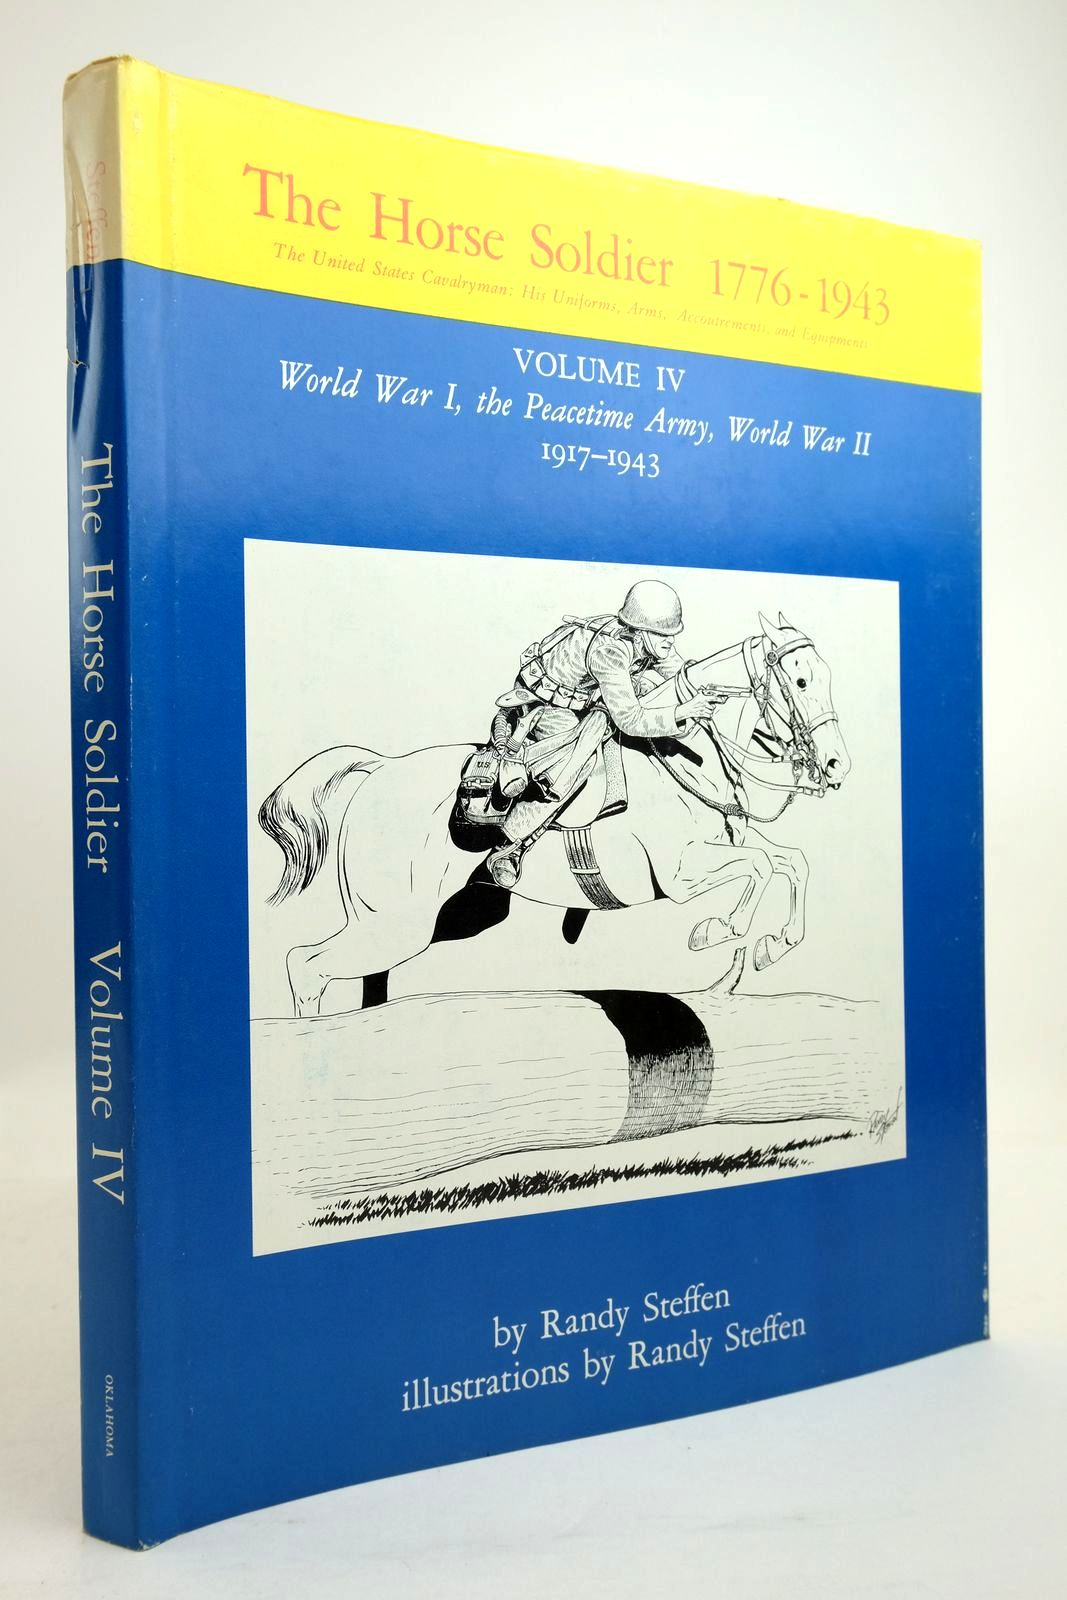 Photo of THE HORSE SOLDIER 1776-1943: VOLUME IV: WORLD WAR I, THE PEACETIME ARMY, WORLD WAR II 1917-1943 written by Steffen, Randy illustrated by Steffen, Randy published by University of Oklahoma Press (STOCK CODE: 2134516)  for sale by Stella & Rose's Books